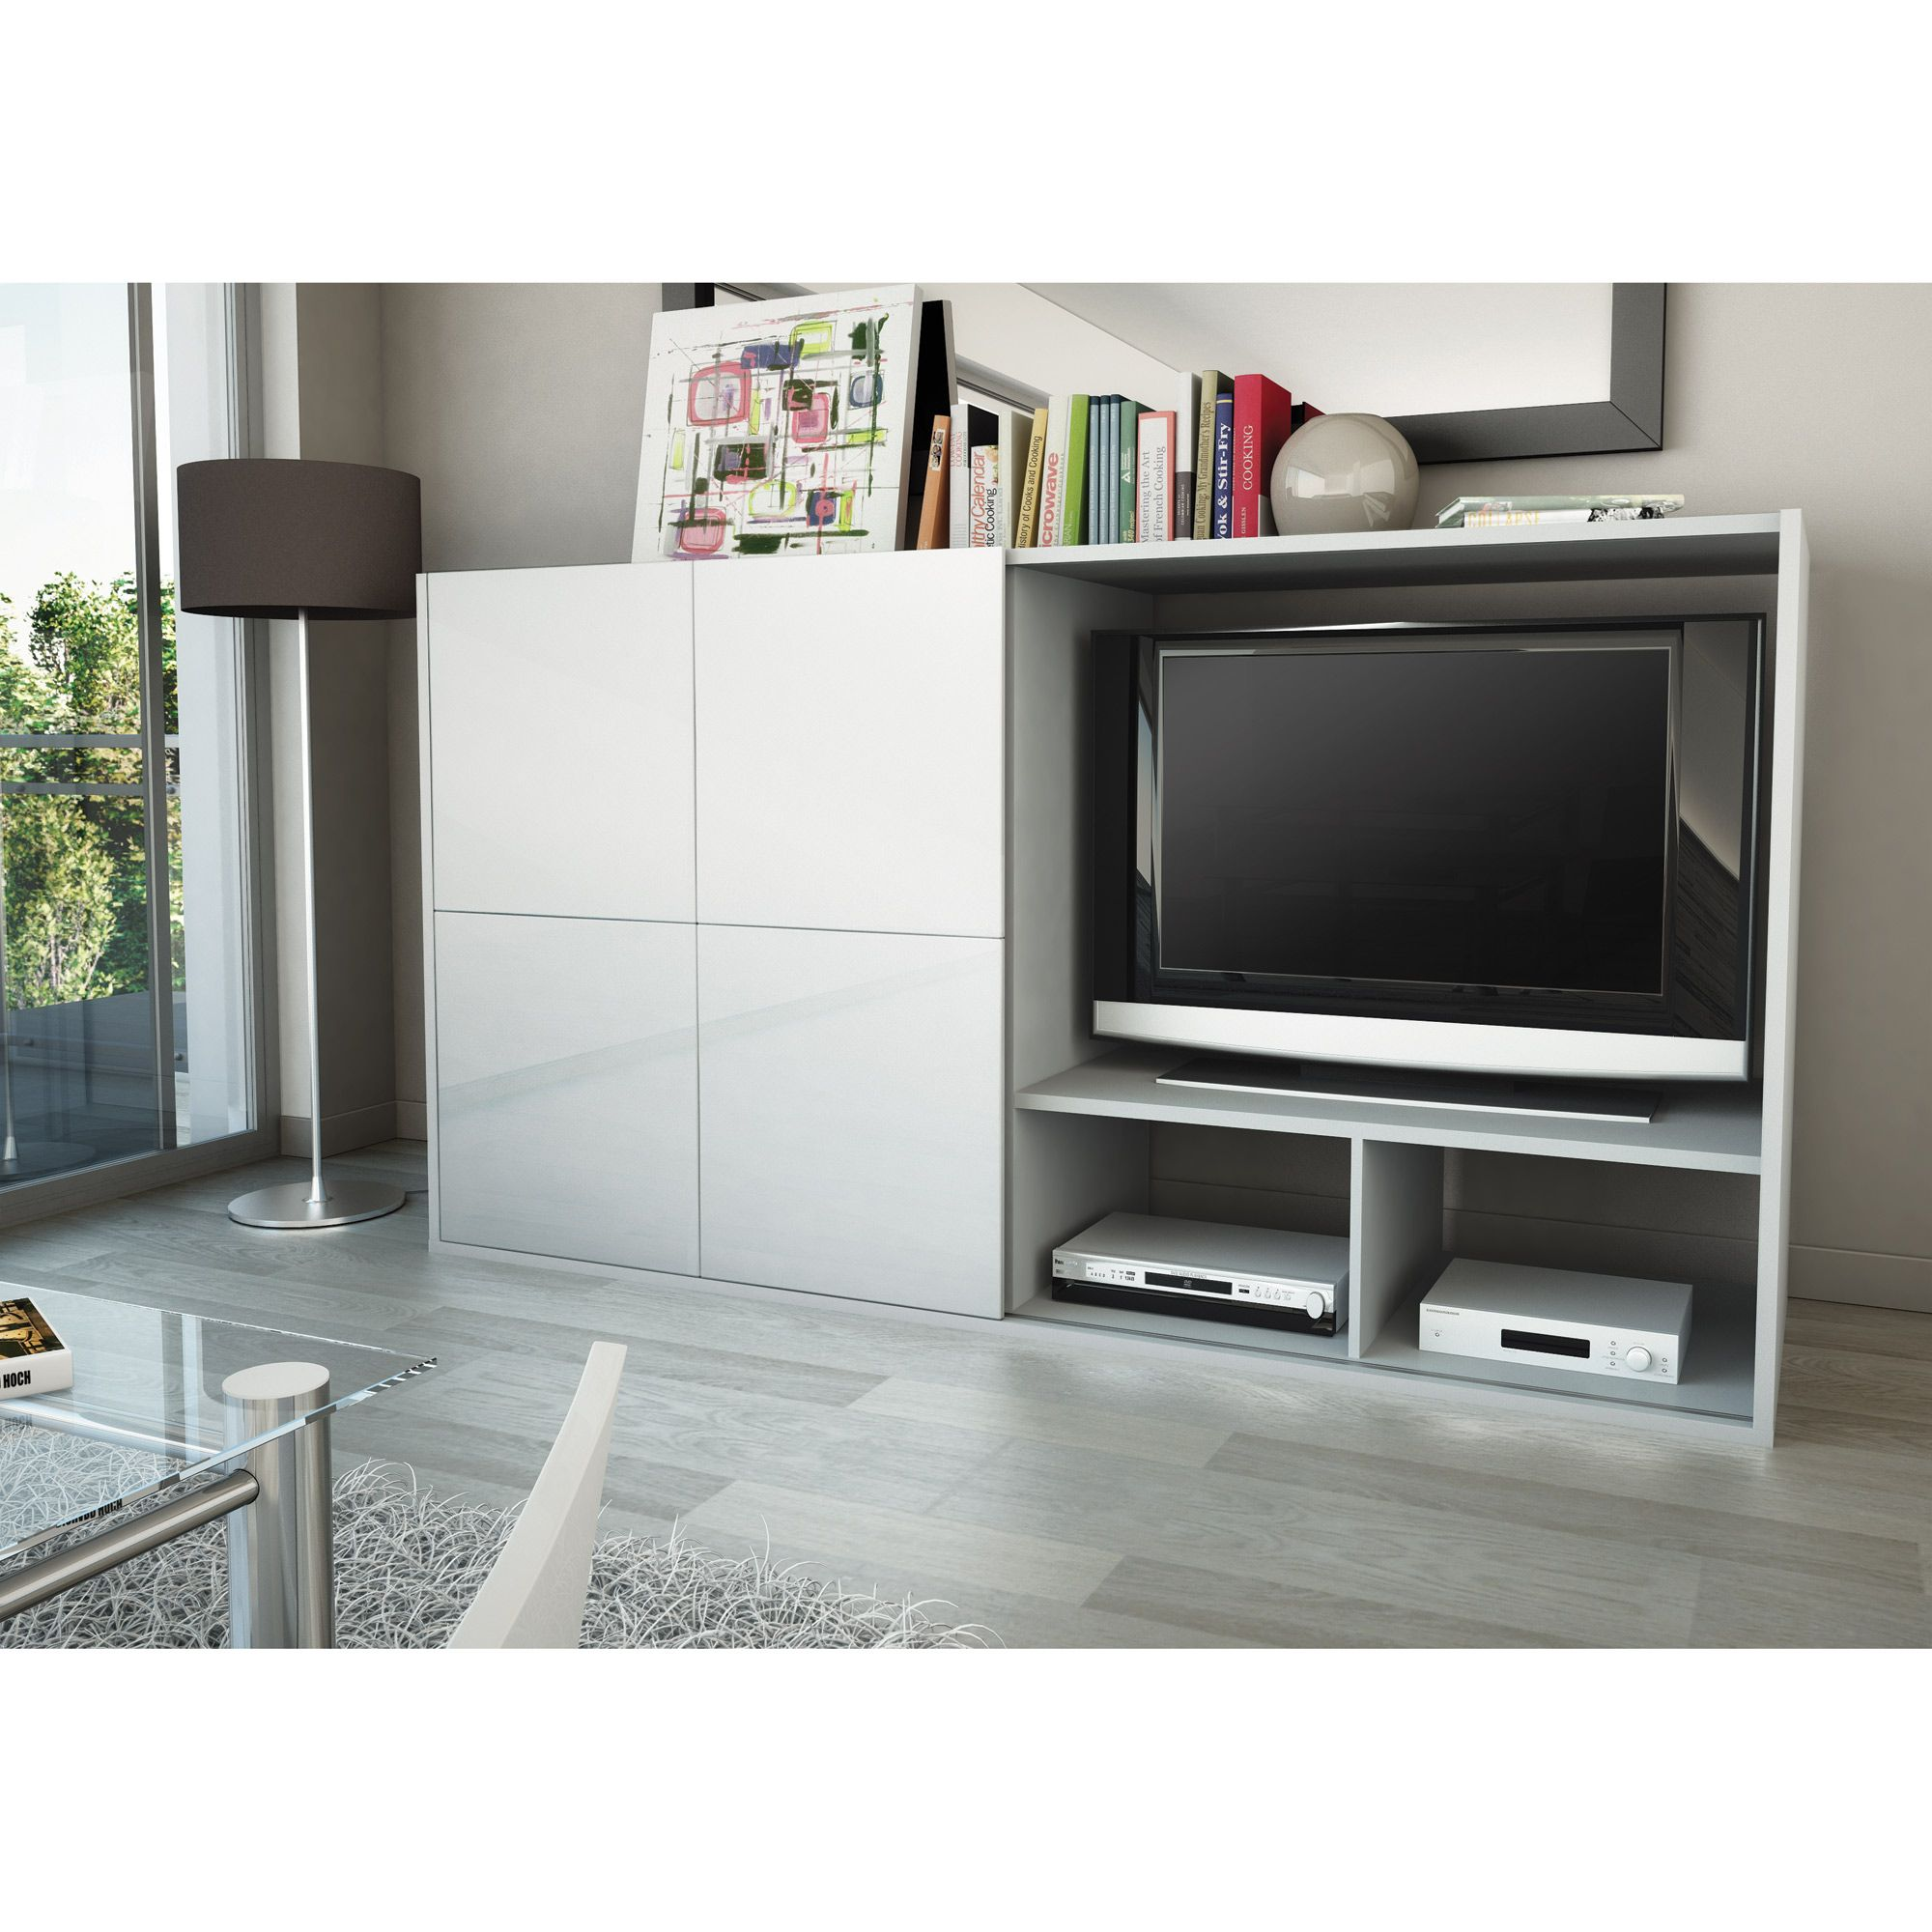 Porte Coulissante Meuble Tv - Inspirant Meuble Tv Porte Coulissante D Coration Fran Aise [mjhdah]https://www.gianecchini.us/wp-content/uploads/images/1515929188-meuble-tv-design-avec-porte-coulissante-solutions-pour-la-meuble-tv-porte-coulissante.jpg